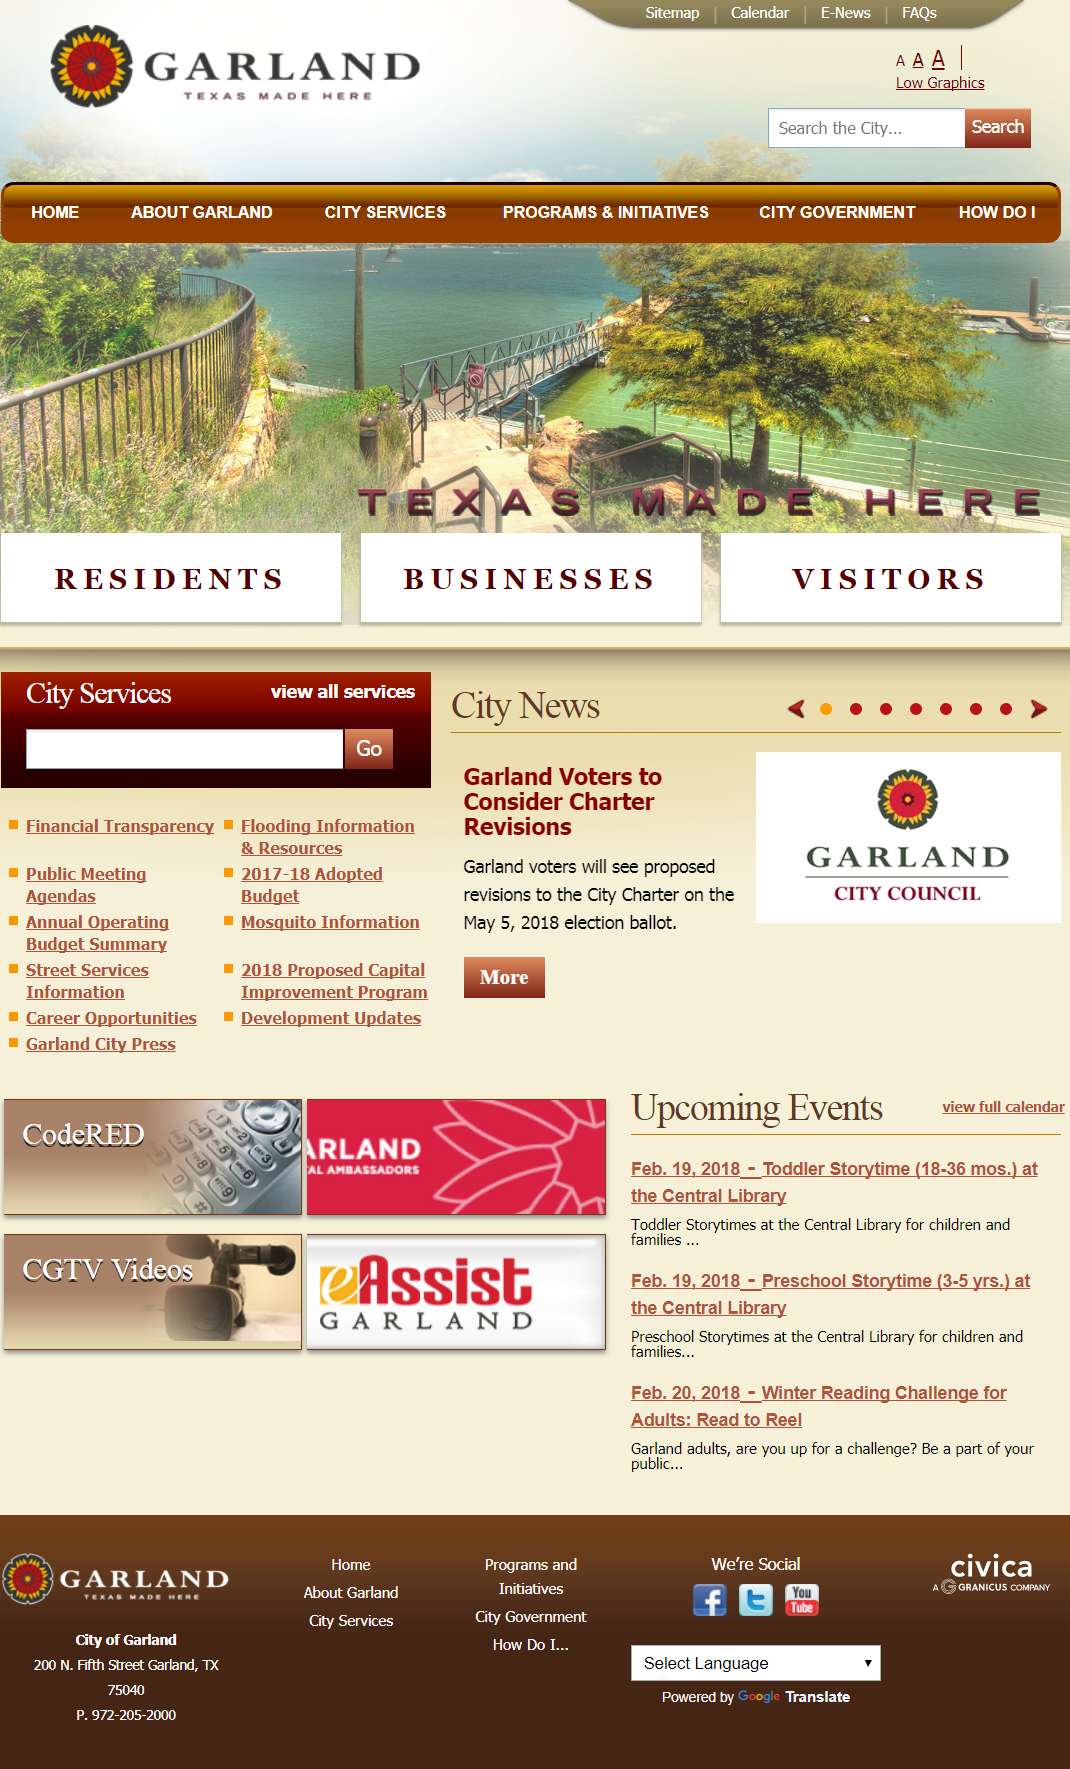 Garland Website Design and Functionality